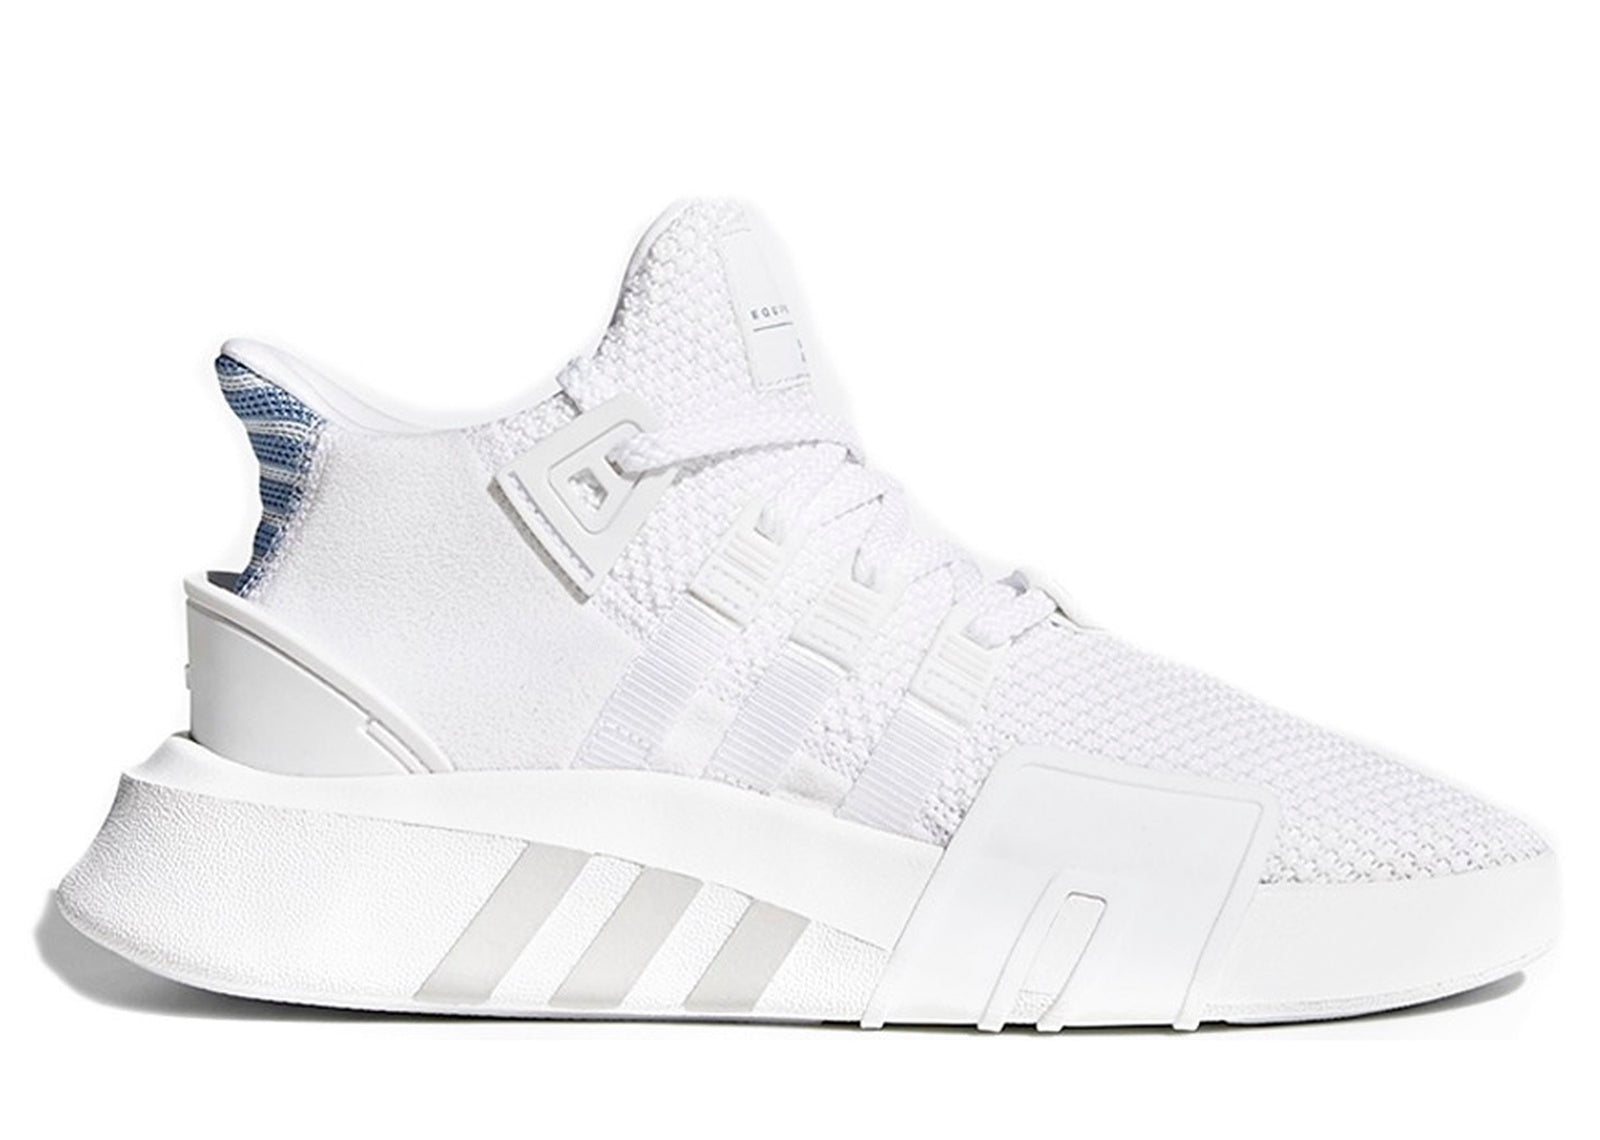 premium selection 7396c 89811 ADIDAS EQT BASKETBALL ADV RUNNING WHITE ASH BLUE